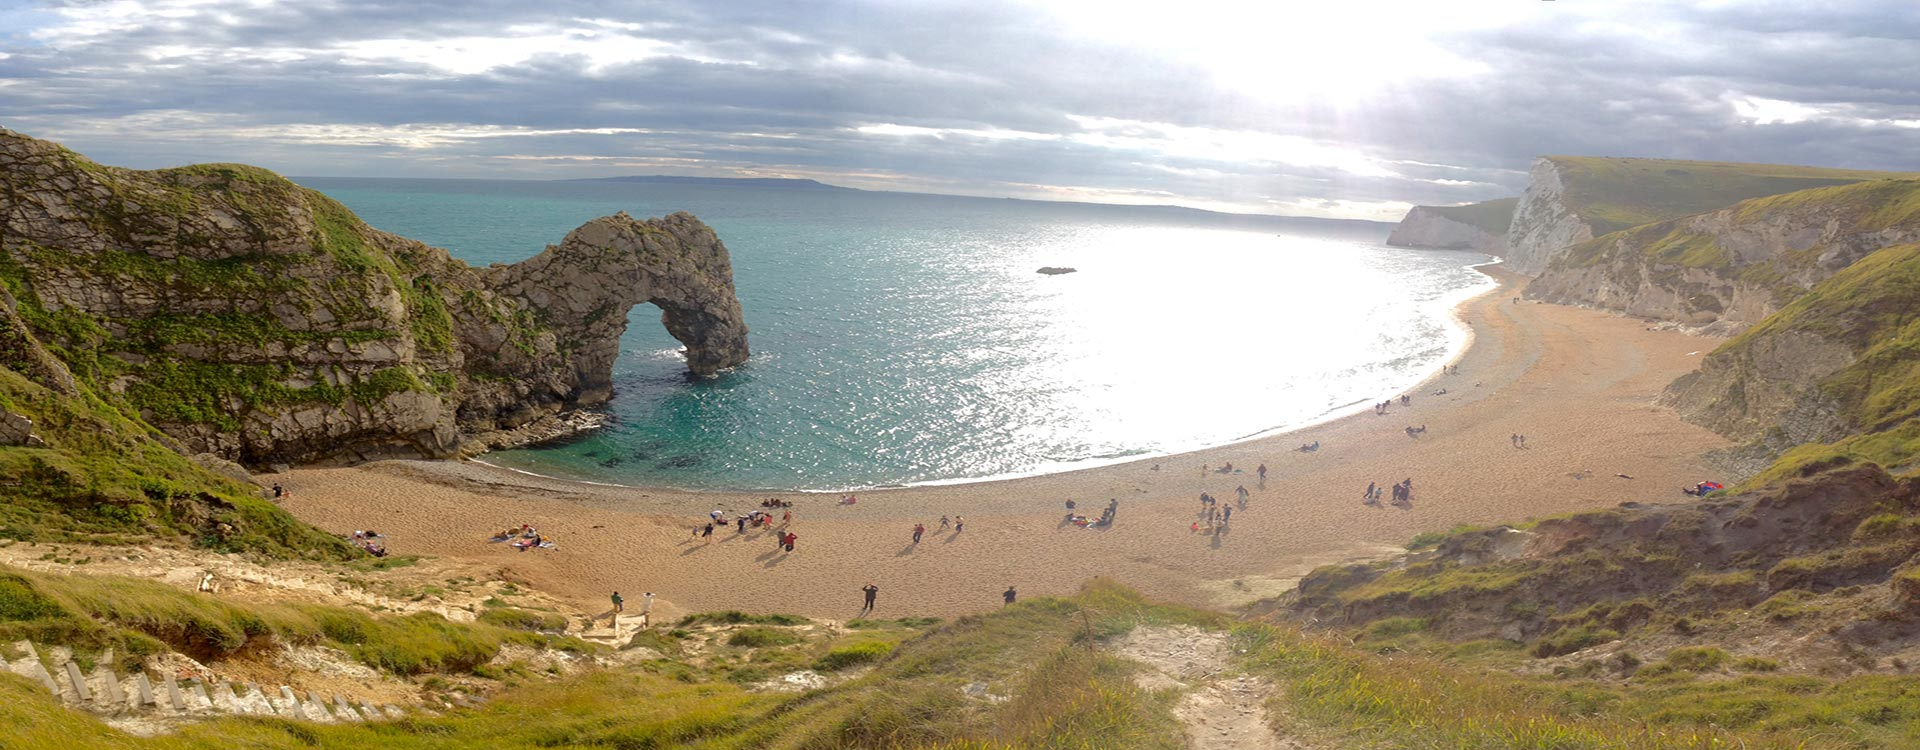 Durdle Door – the iconic limestone arch that extends into the sea along the Jurassic Coast of Dorset is close to The Pink House Lulworth